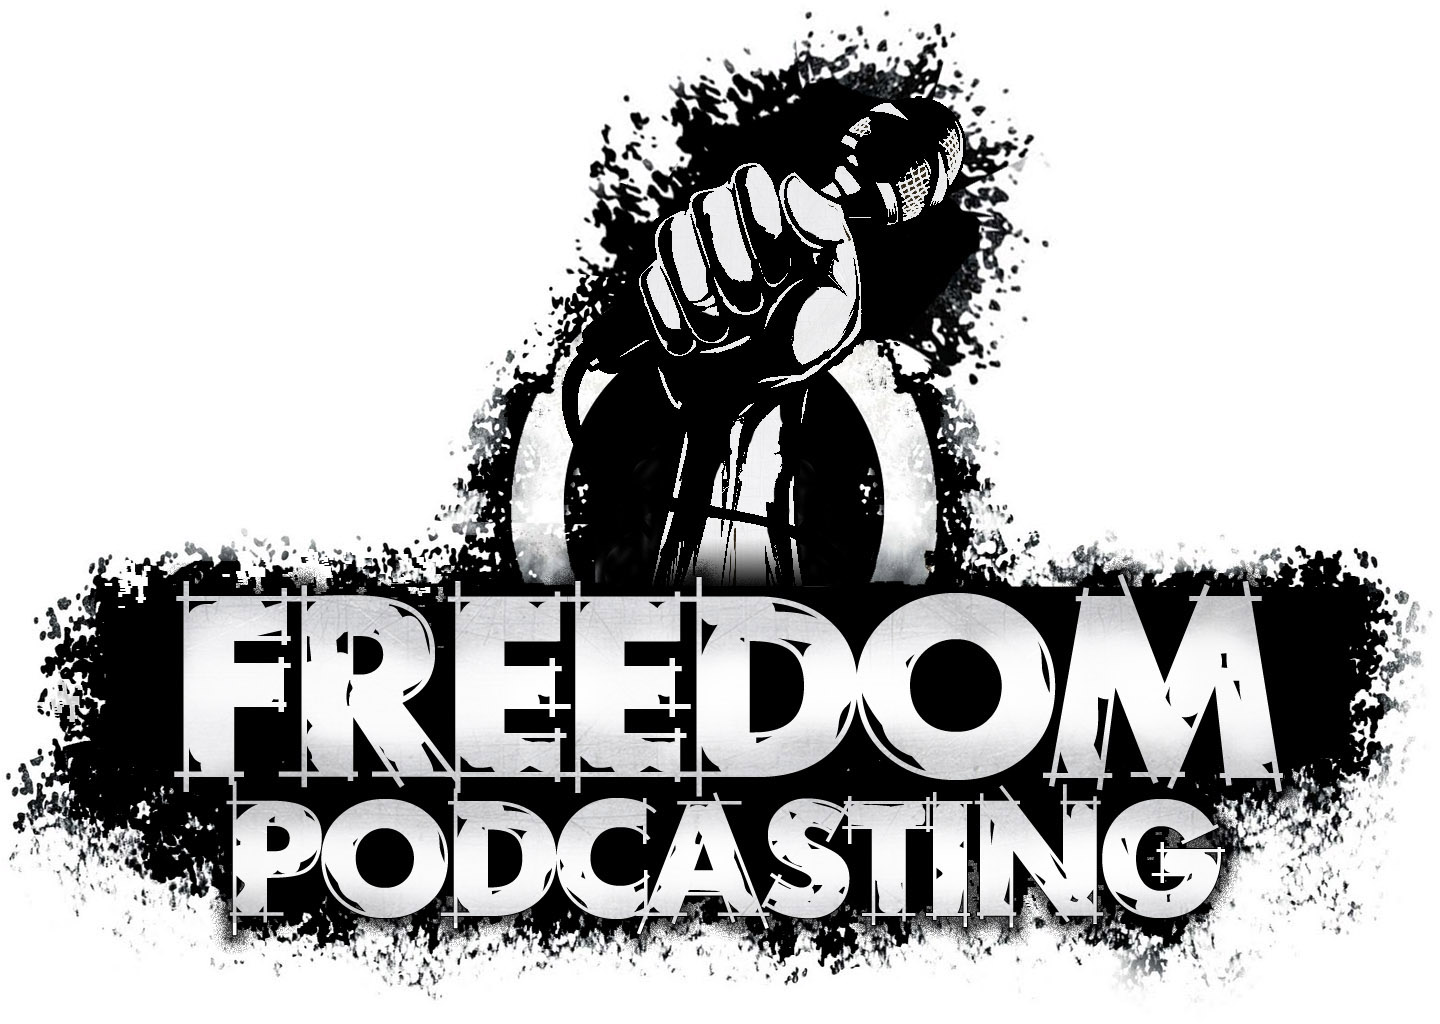 The Freedom in Podcasting as a Medium